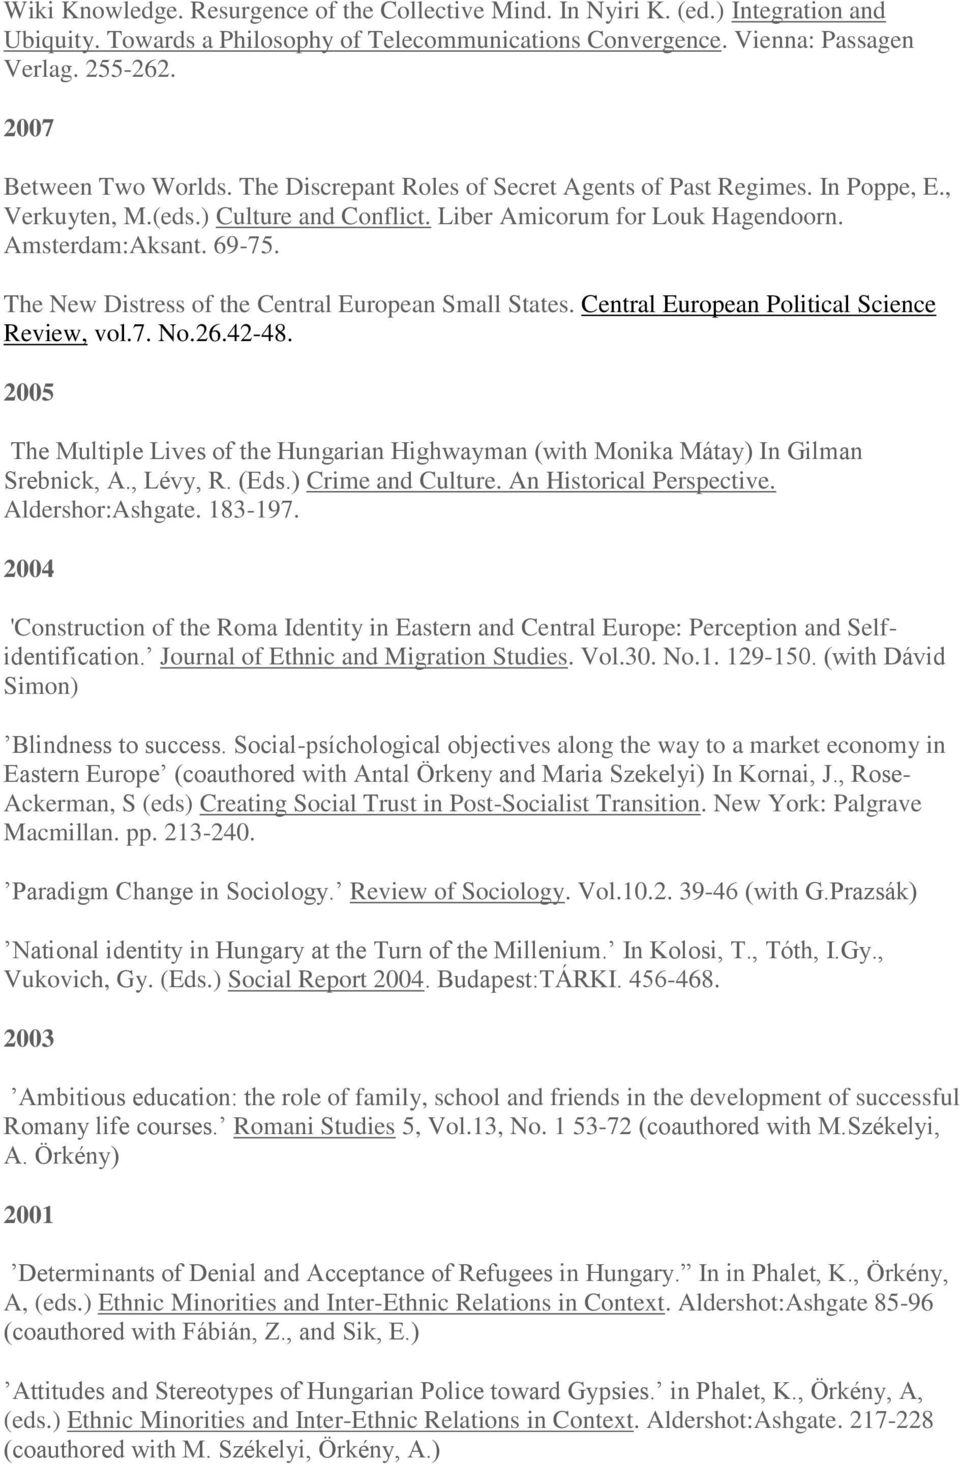 The New Distress of the Central European Small States. Central European Political Science Review, vol.7. No.26.42-48.